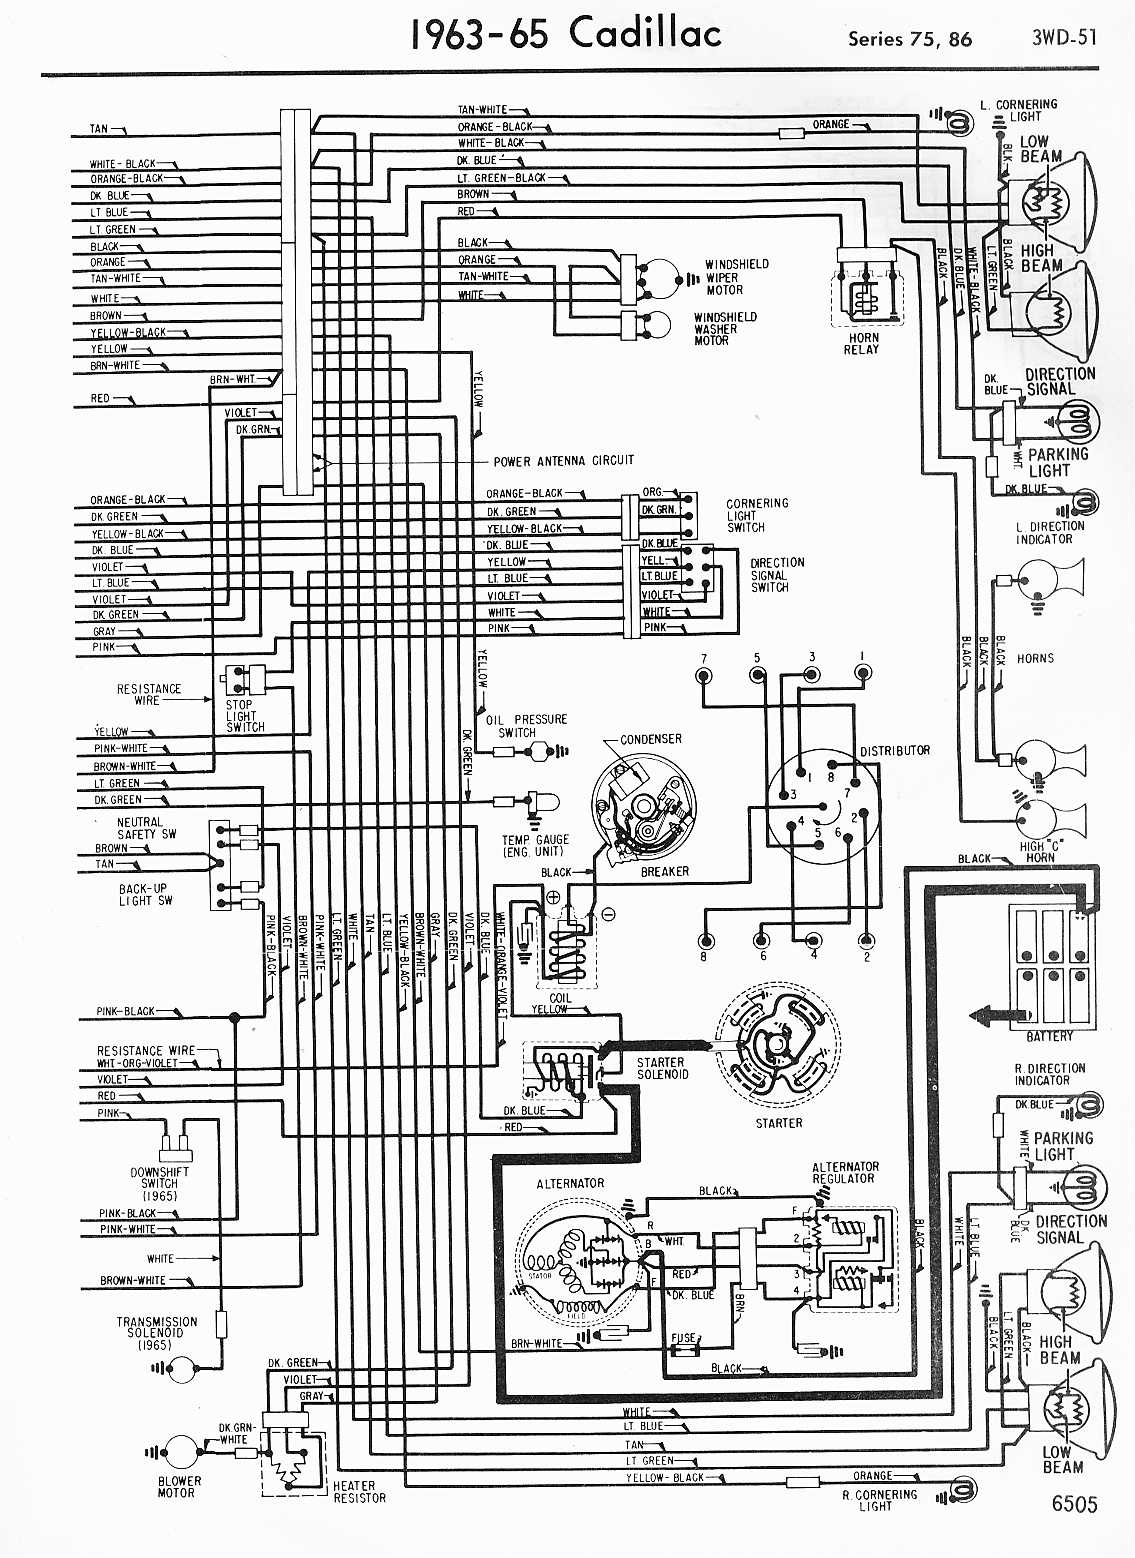 MWireCadi65_3WD 051 1999 cadillac deville starter wiring wiring diagram simonand 2001 Cadillac DeVille at cos-gaming.co